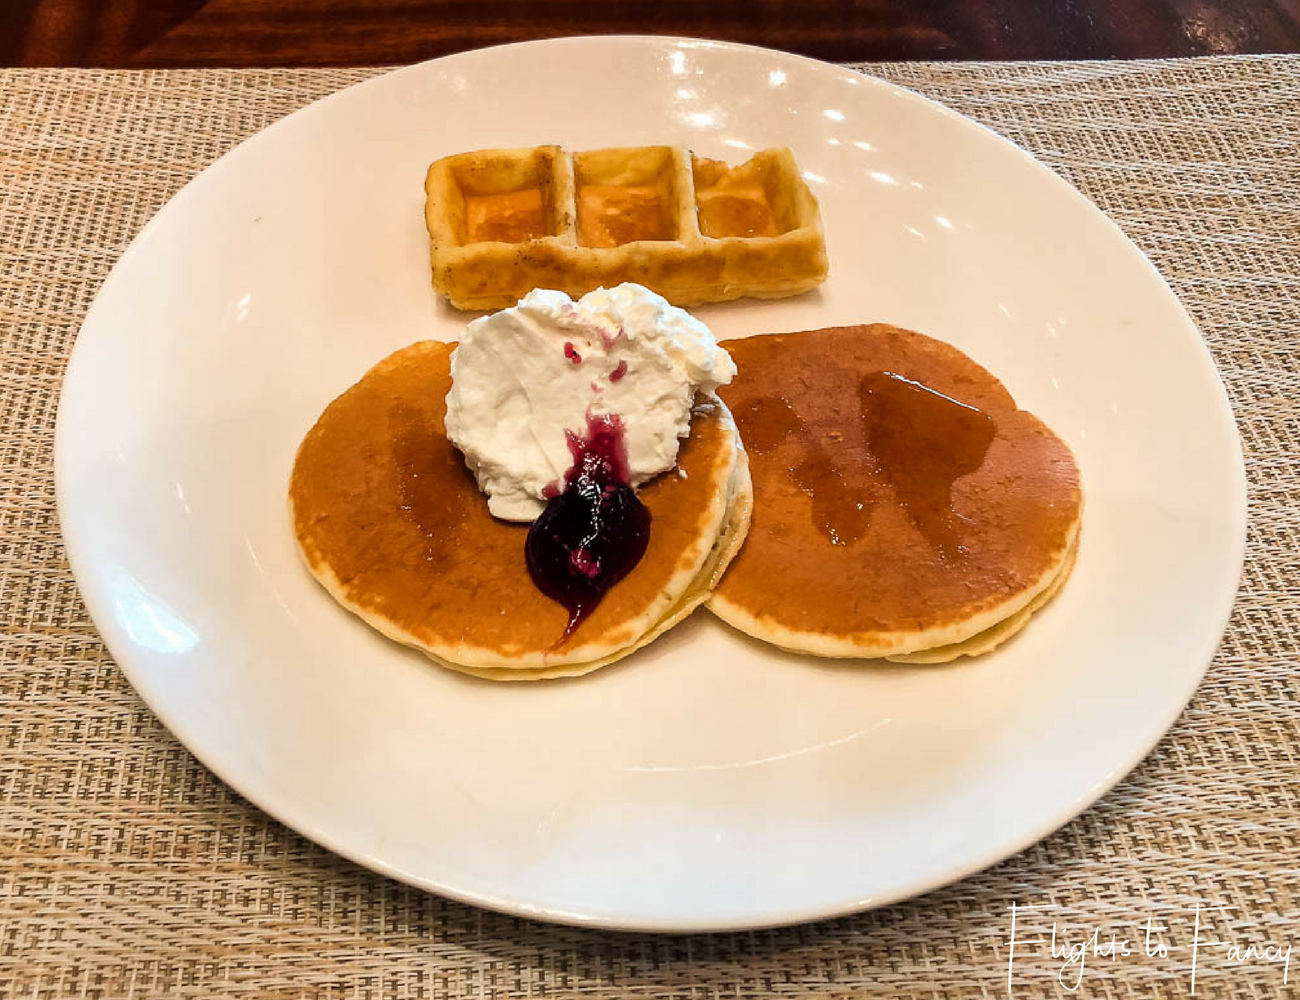 Hotel near SM Cebu City - Radisson Blue Cebu Breakfast Pancakes & Waffles by Flights to Fancy